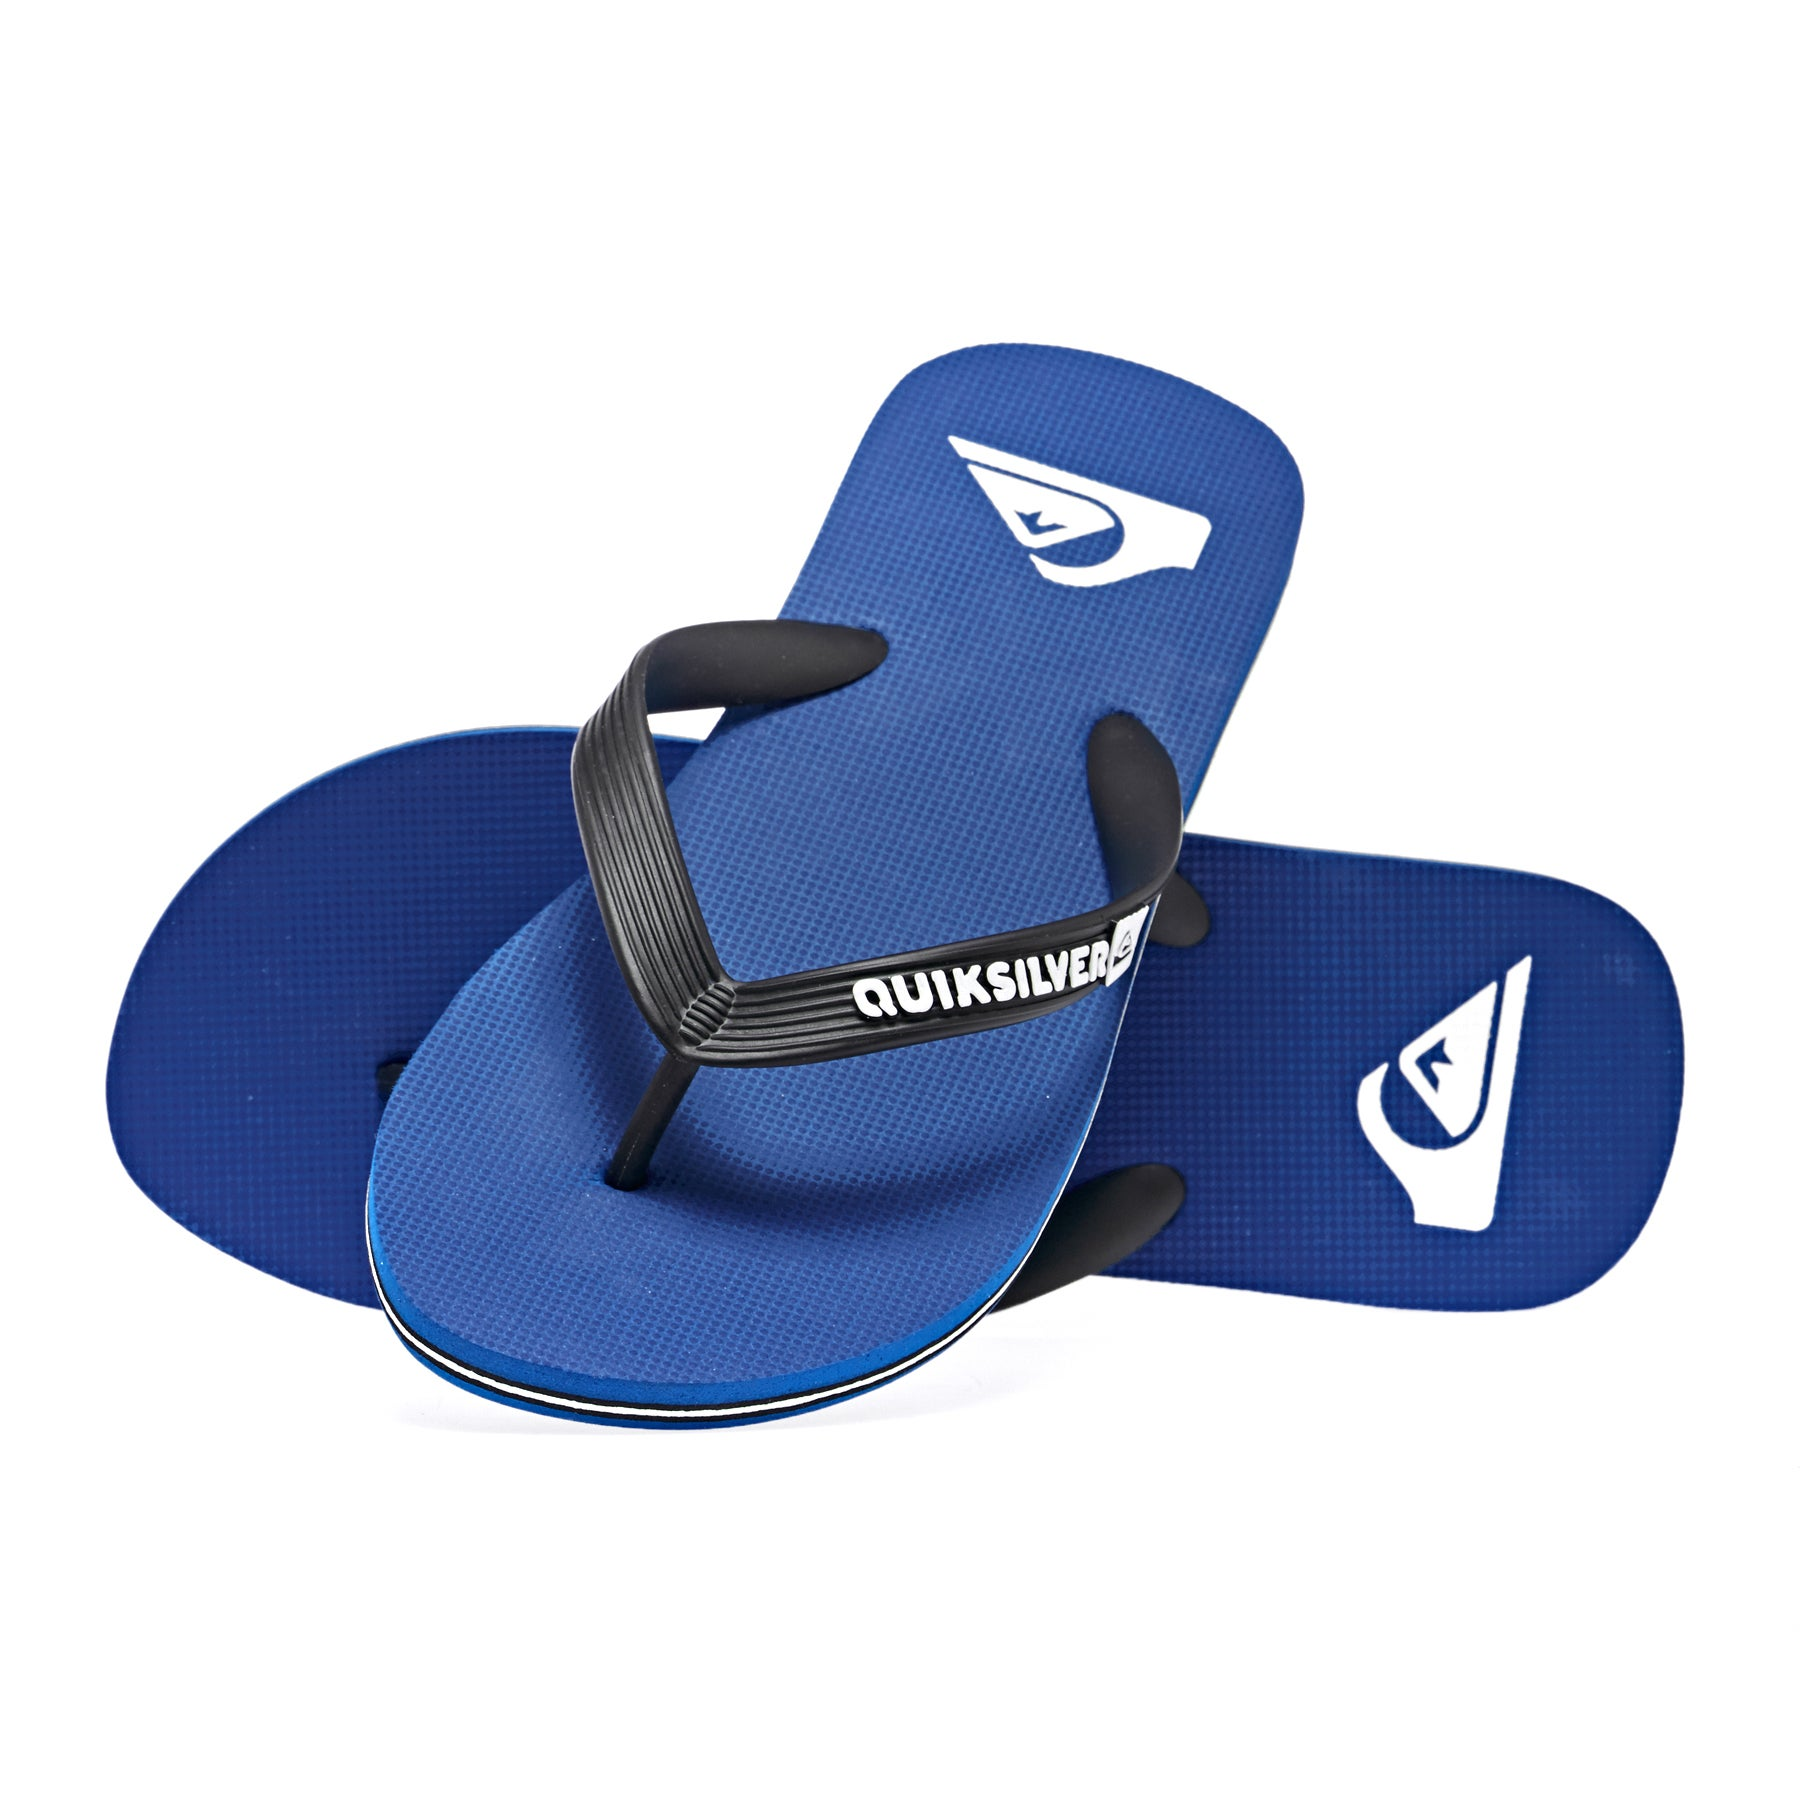 8b2111d0e Quiksilver Molokai Sandals available from Surfdome